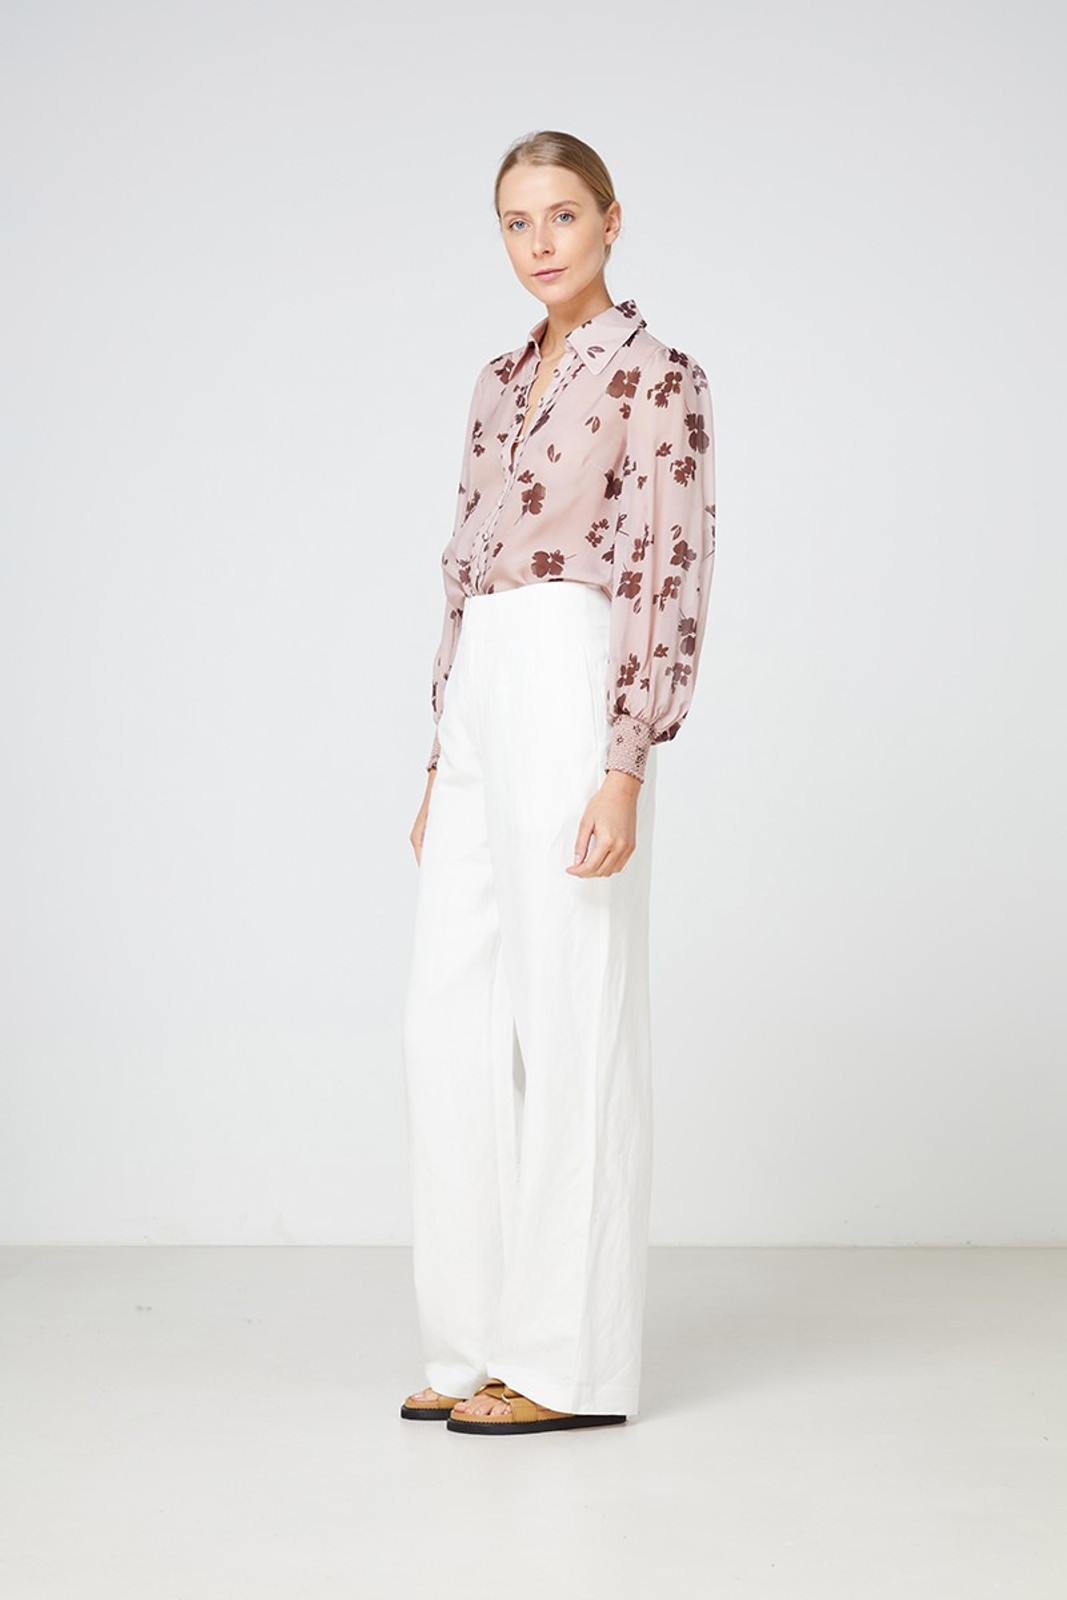 Elka Collective Portofino Shirt Pink  7